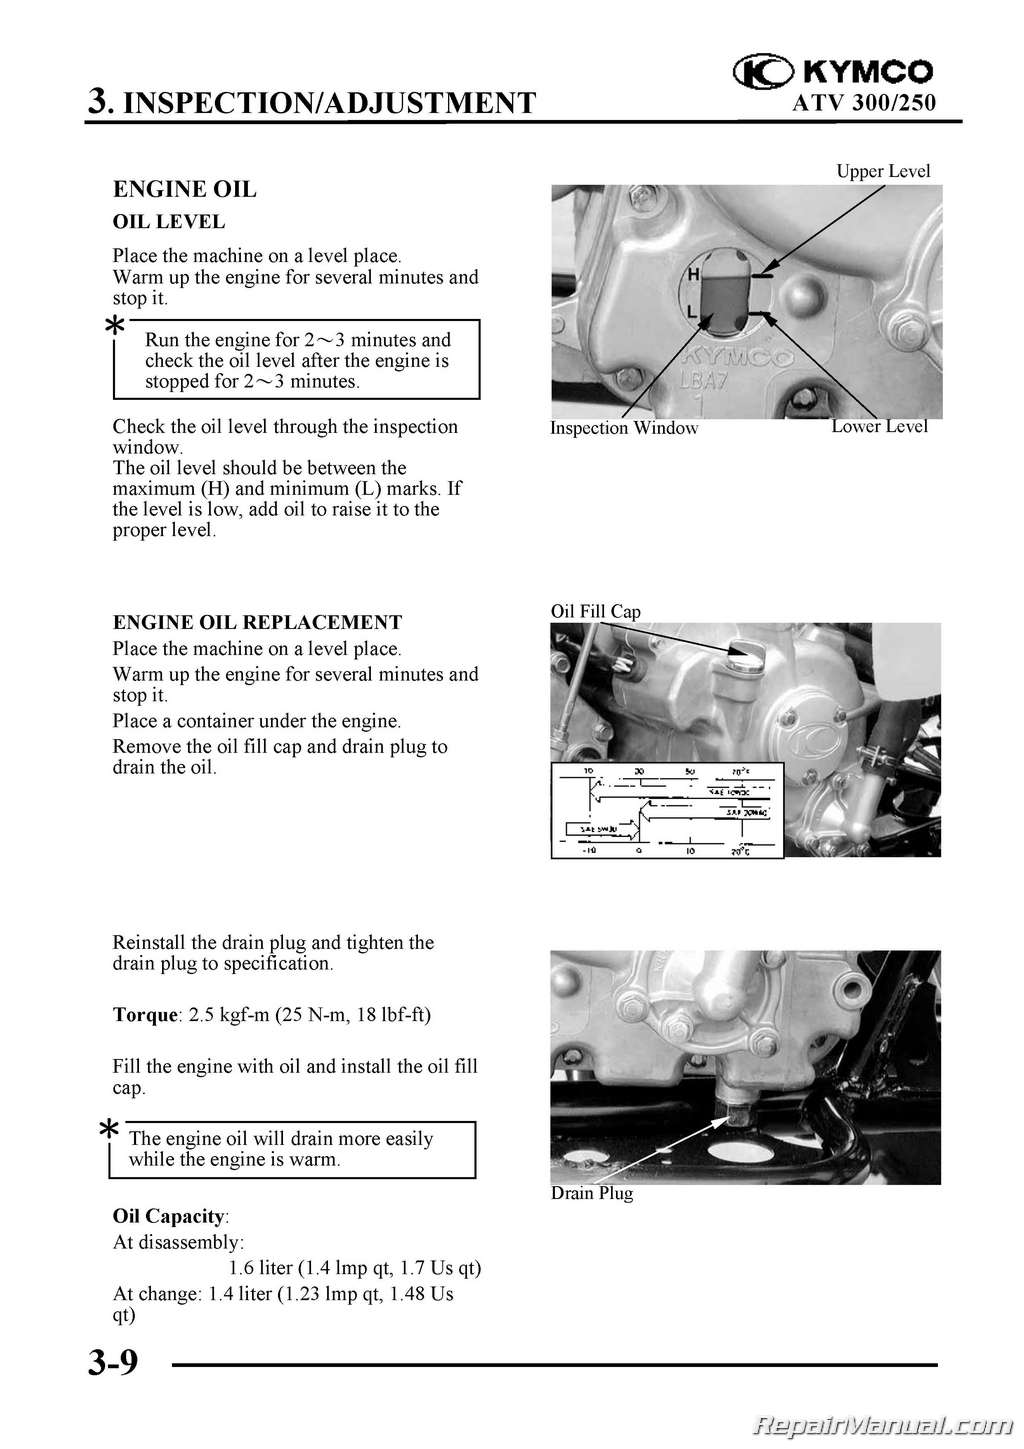 Pages-from-Mongoose-300-Service-Manual-3_Page_1 Kymco Wiring Diagram on kawasaki wiring diagram, garelli wiring diagram, kreidler wiring diagram, ignition coil wiring diagram, dodge wiring diagram, honda wiring diagram, cf moto wiring diagram, gy6 cdi wiring diagram, kasea wiring diagram, norton wiring diagram, generic wiring diagram, husaberg wiring diagram, asus wiring diagram, beta wiring diagram, benq wiring diagram, ajs wiring diagram, tomos wiring diagram, evinrude wiring diagram, bajaj wiring diagram, smc wiring diagram,